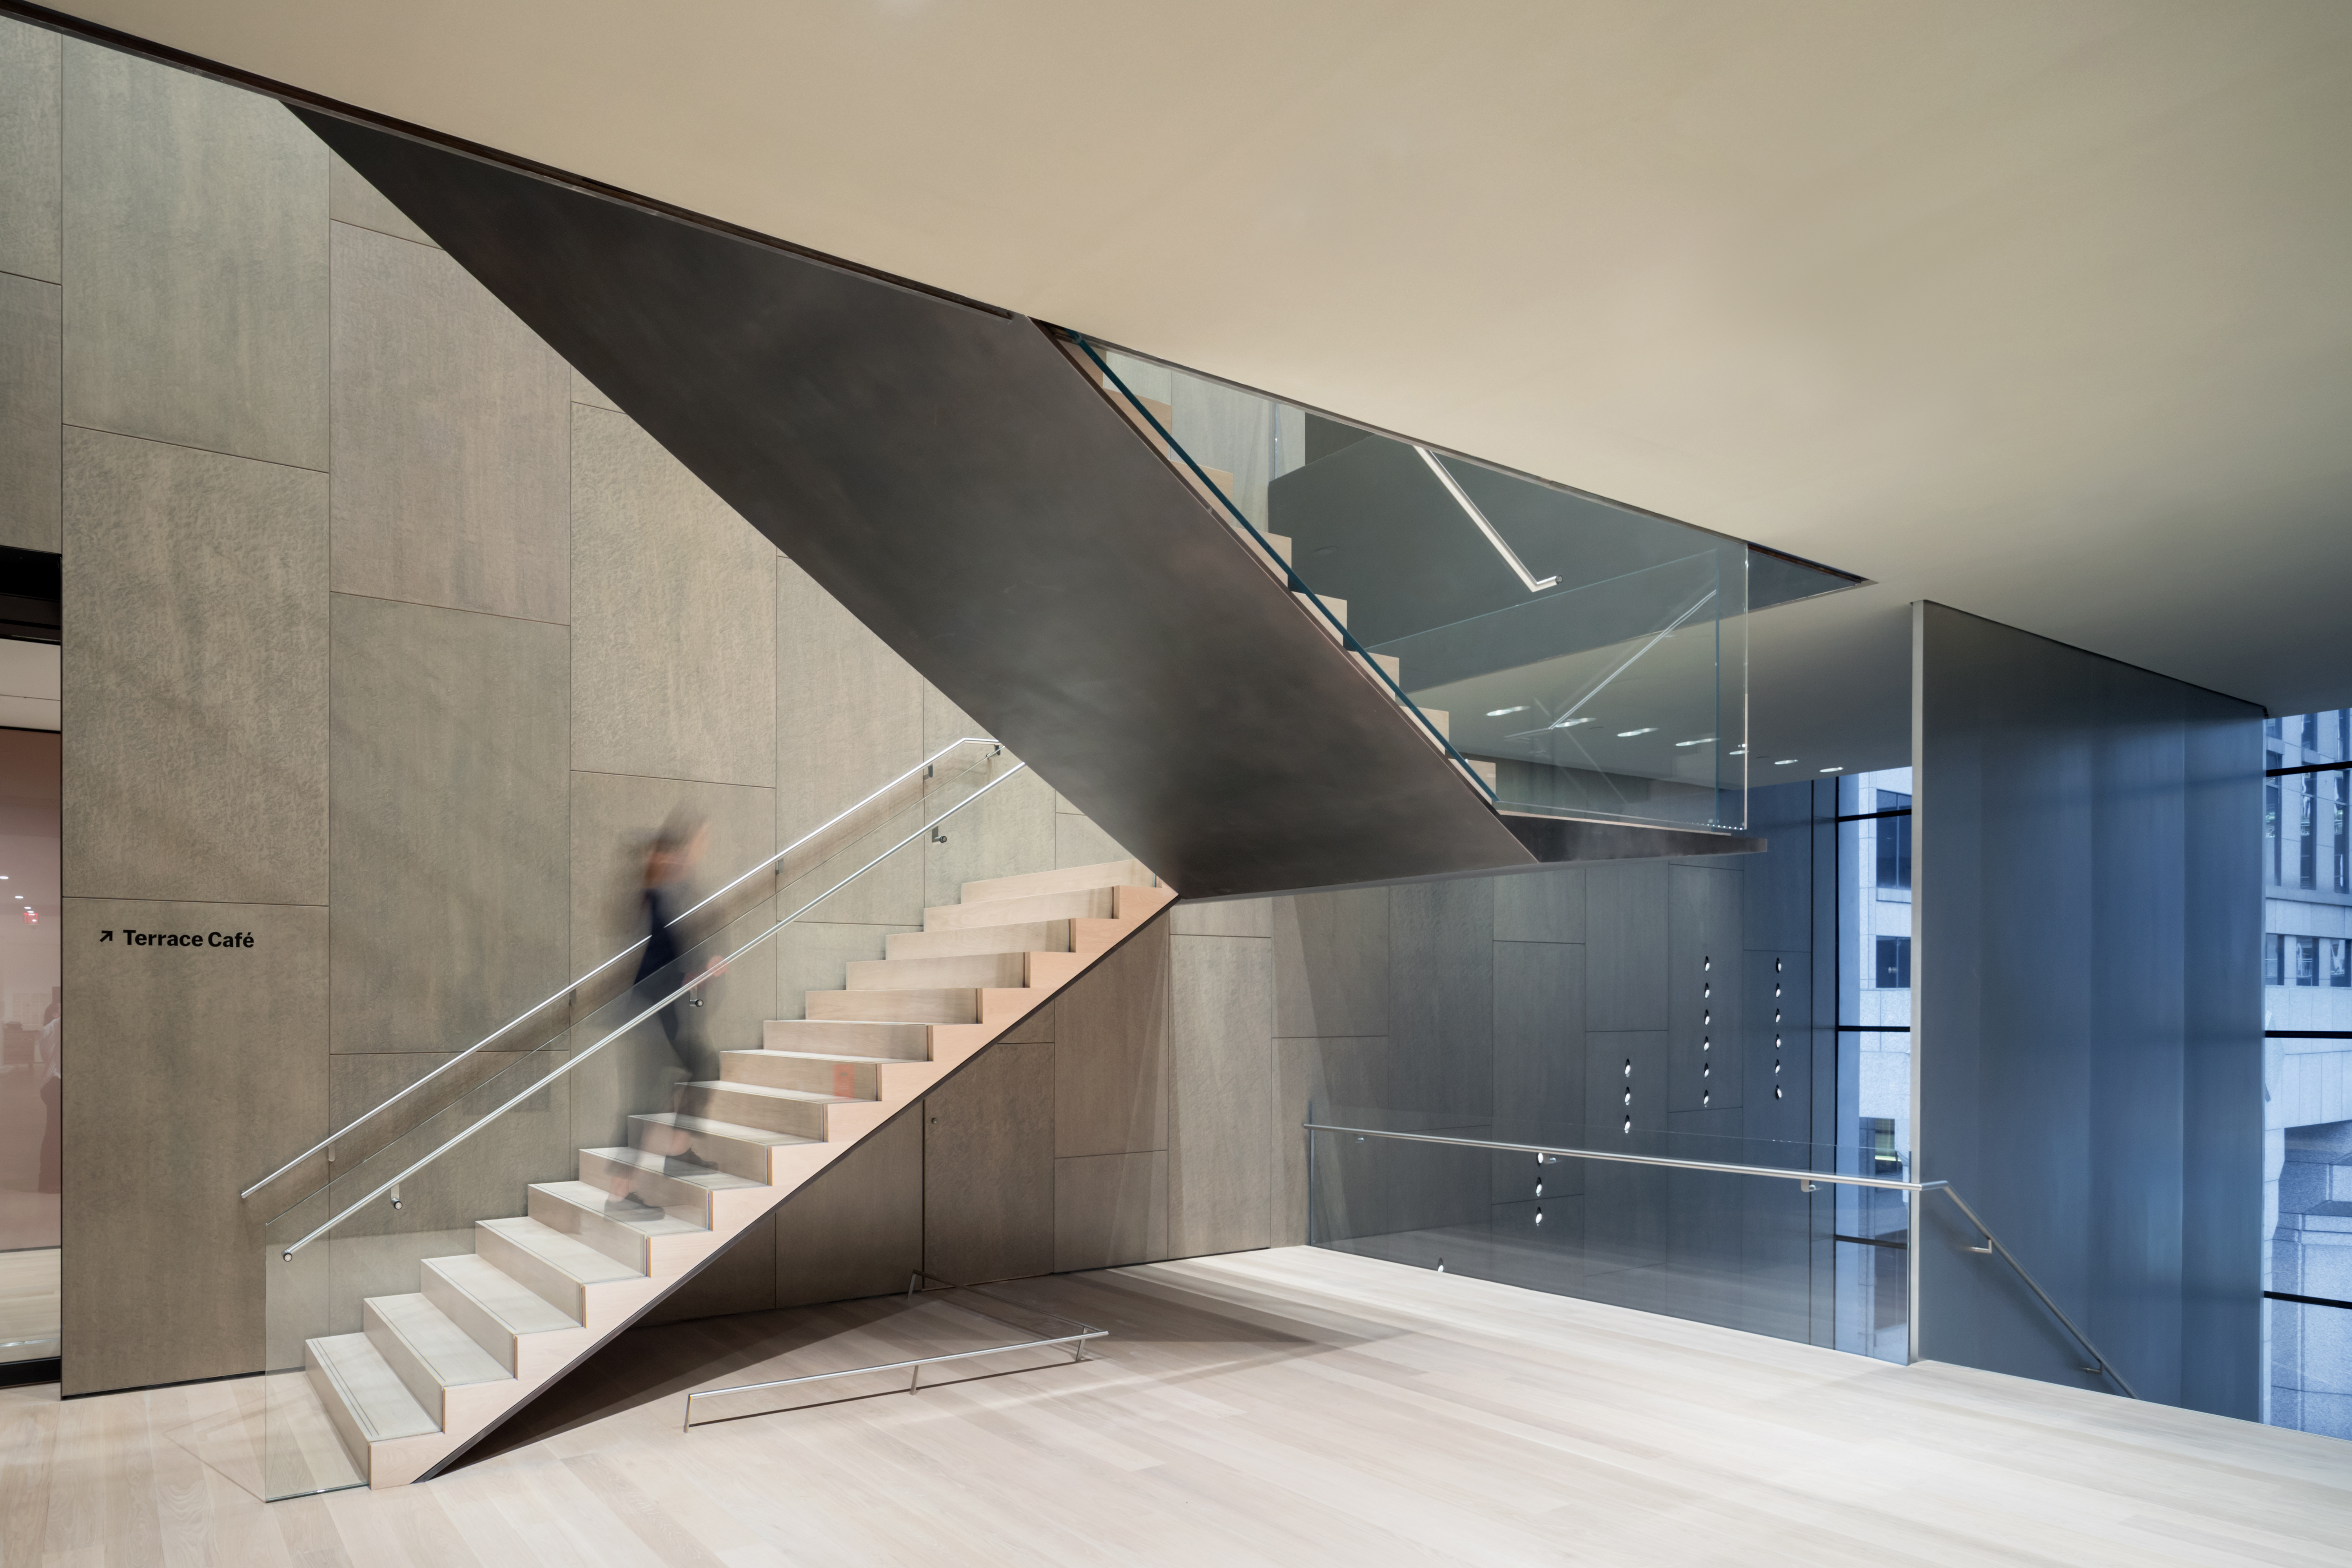 <p>MoMa Fase 2. Interior view of The Museum of Modern Art, Fifth Floor Stair Beeld Iwan Baan. Courtesey of MoMa</p>